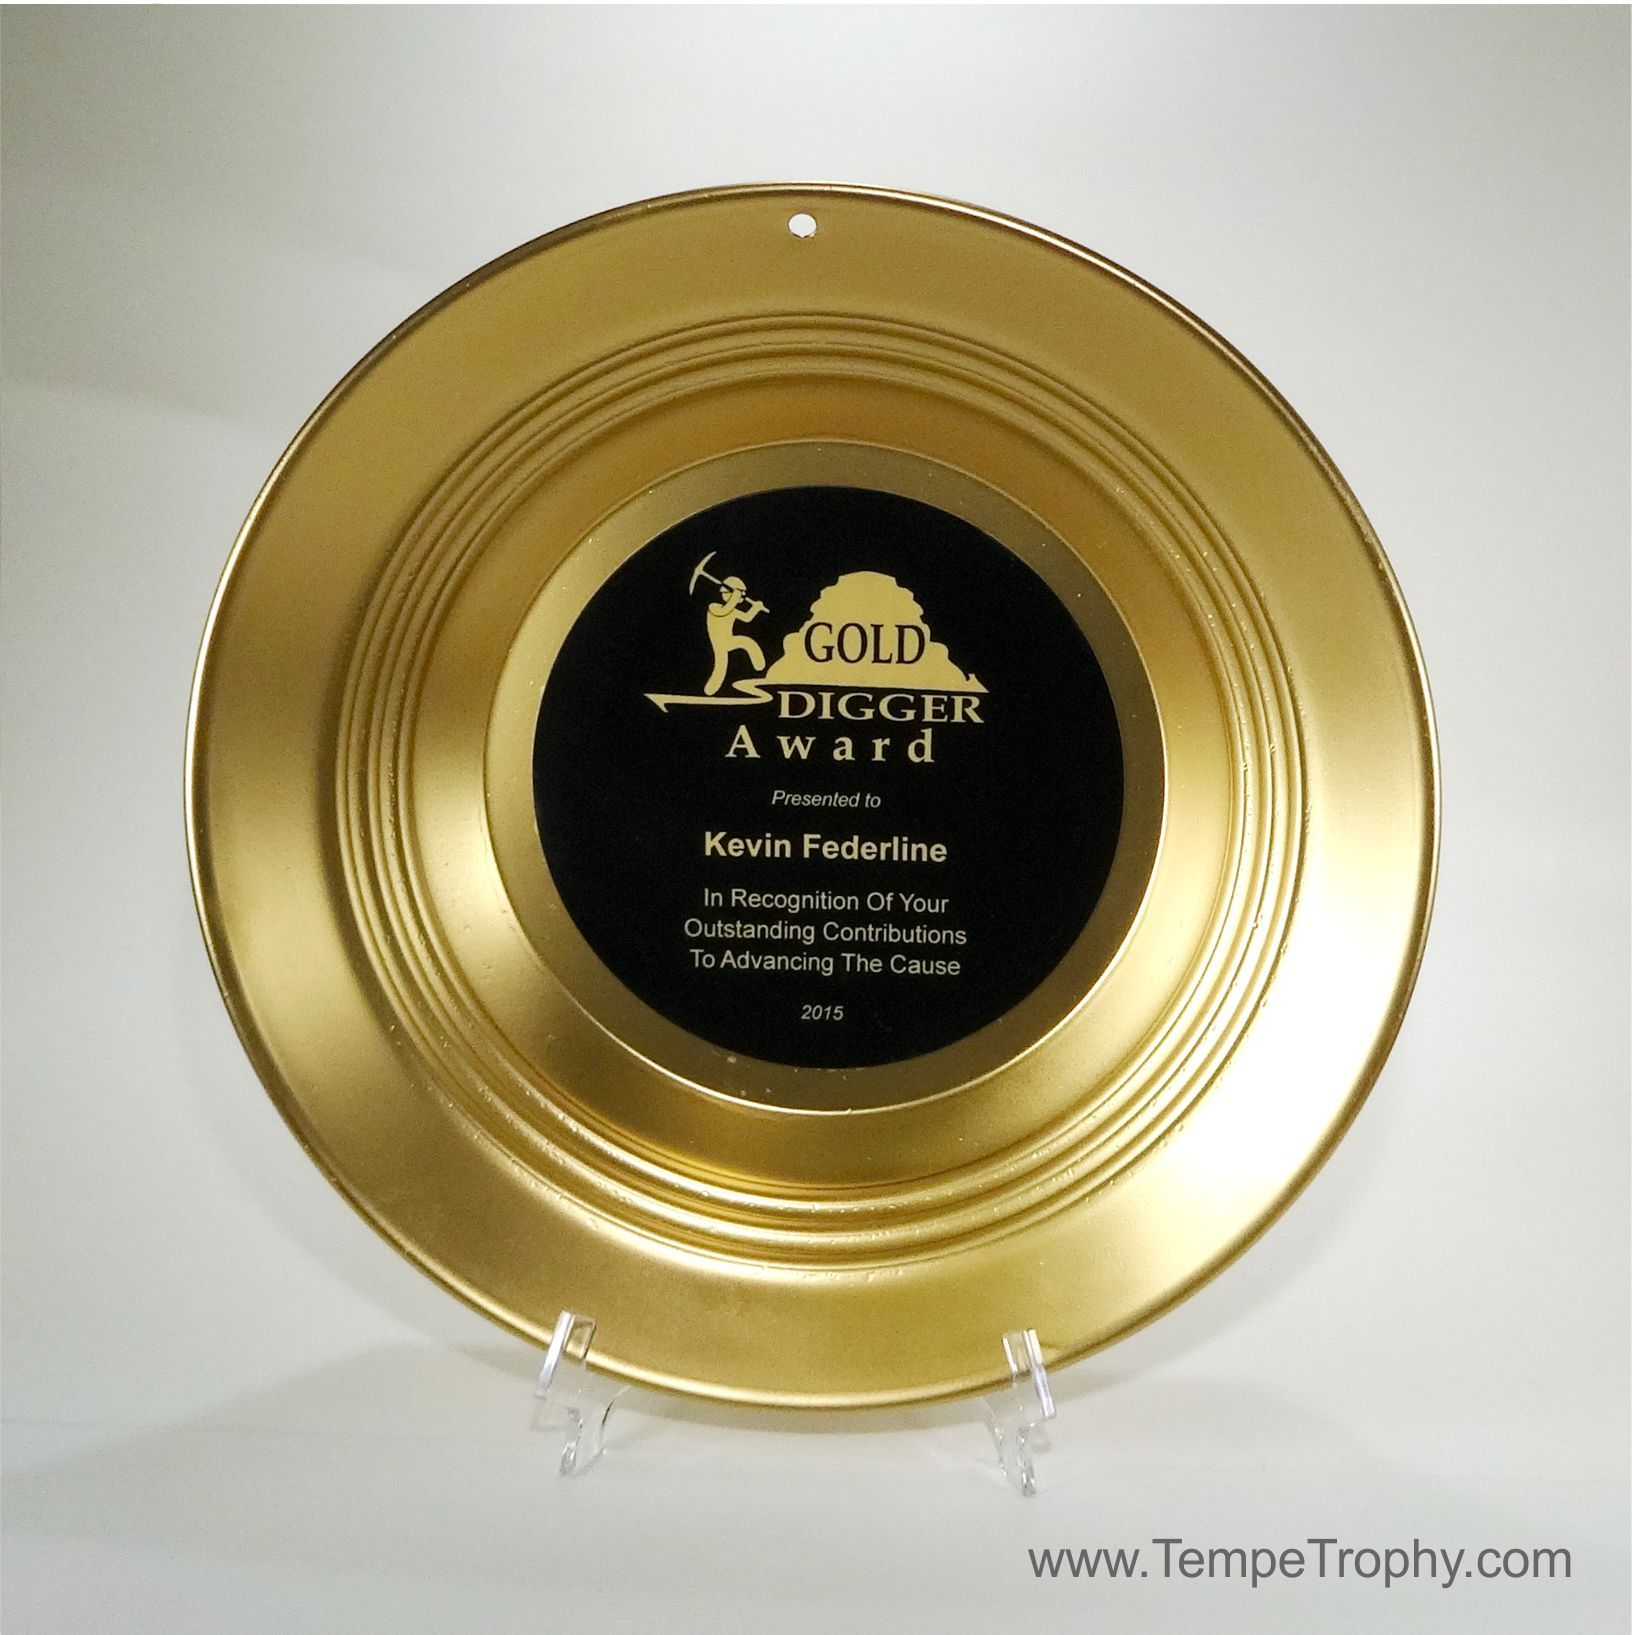 Gold Digger Award Yes This Is Made From A Real Panning Pan